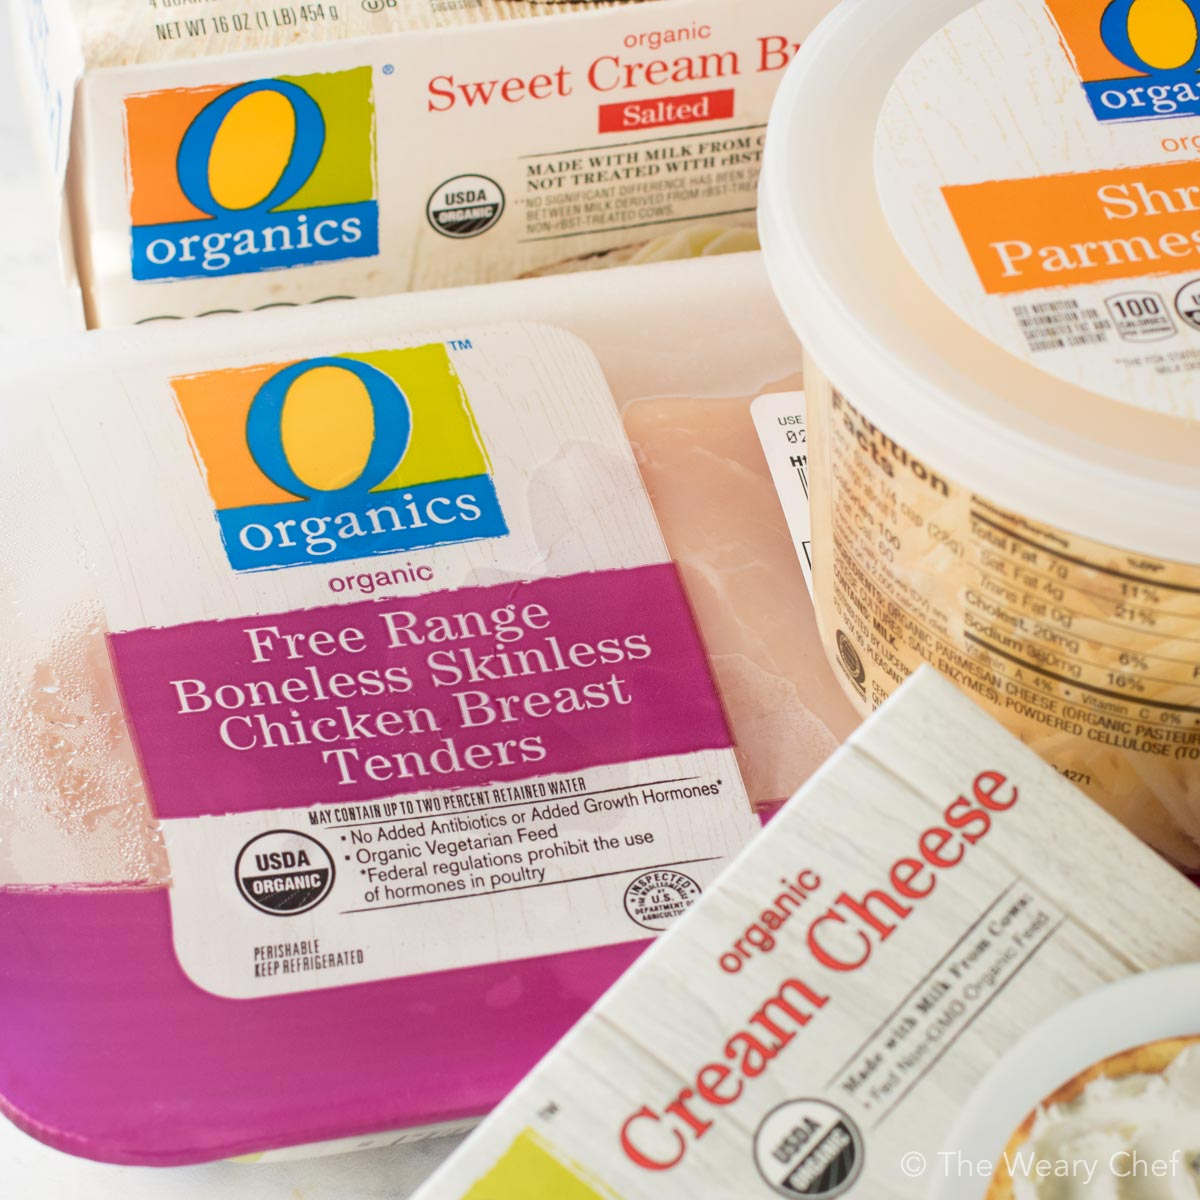 Safeway's O Organics and Open Nature brands let you purchase all natural ingredients at an affordable price!